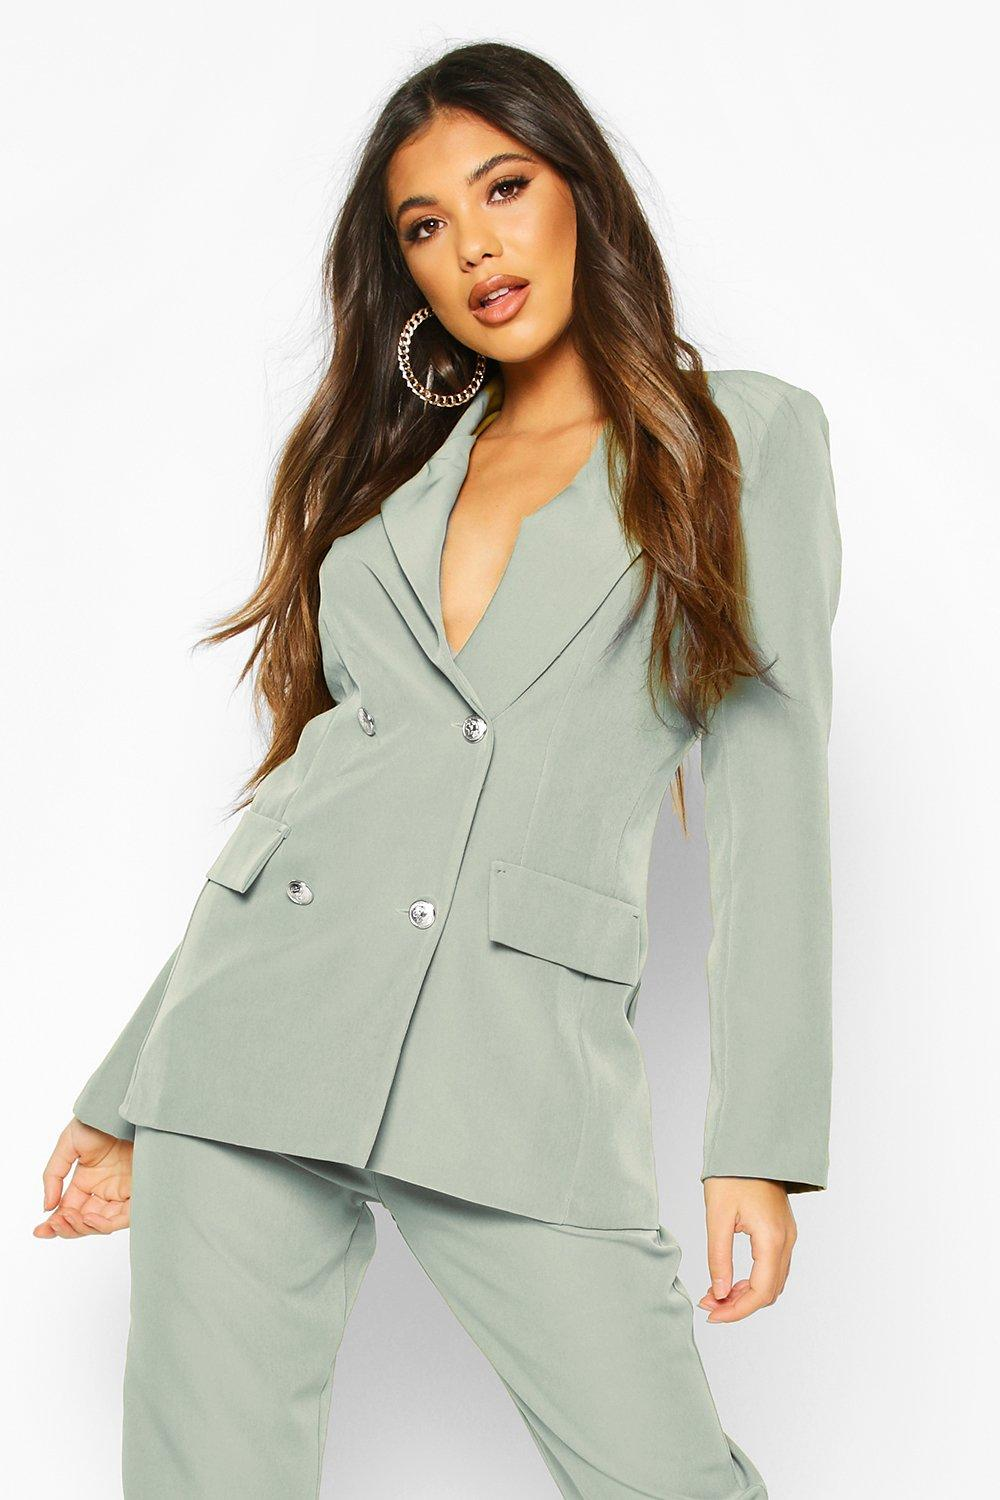 boohoo Womens Double Breasted Boxy Military Blazer - Green - 14, Green